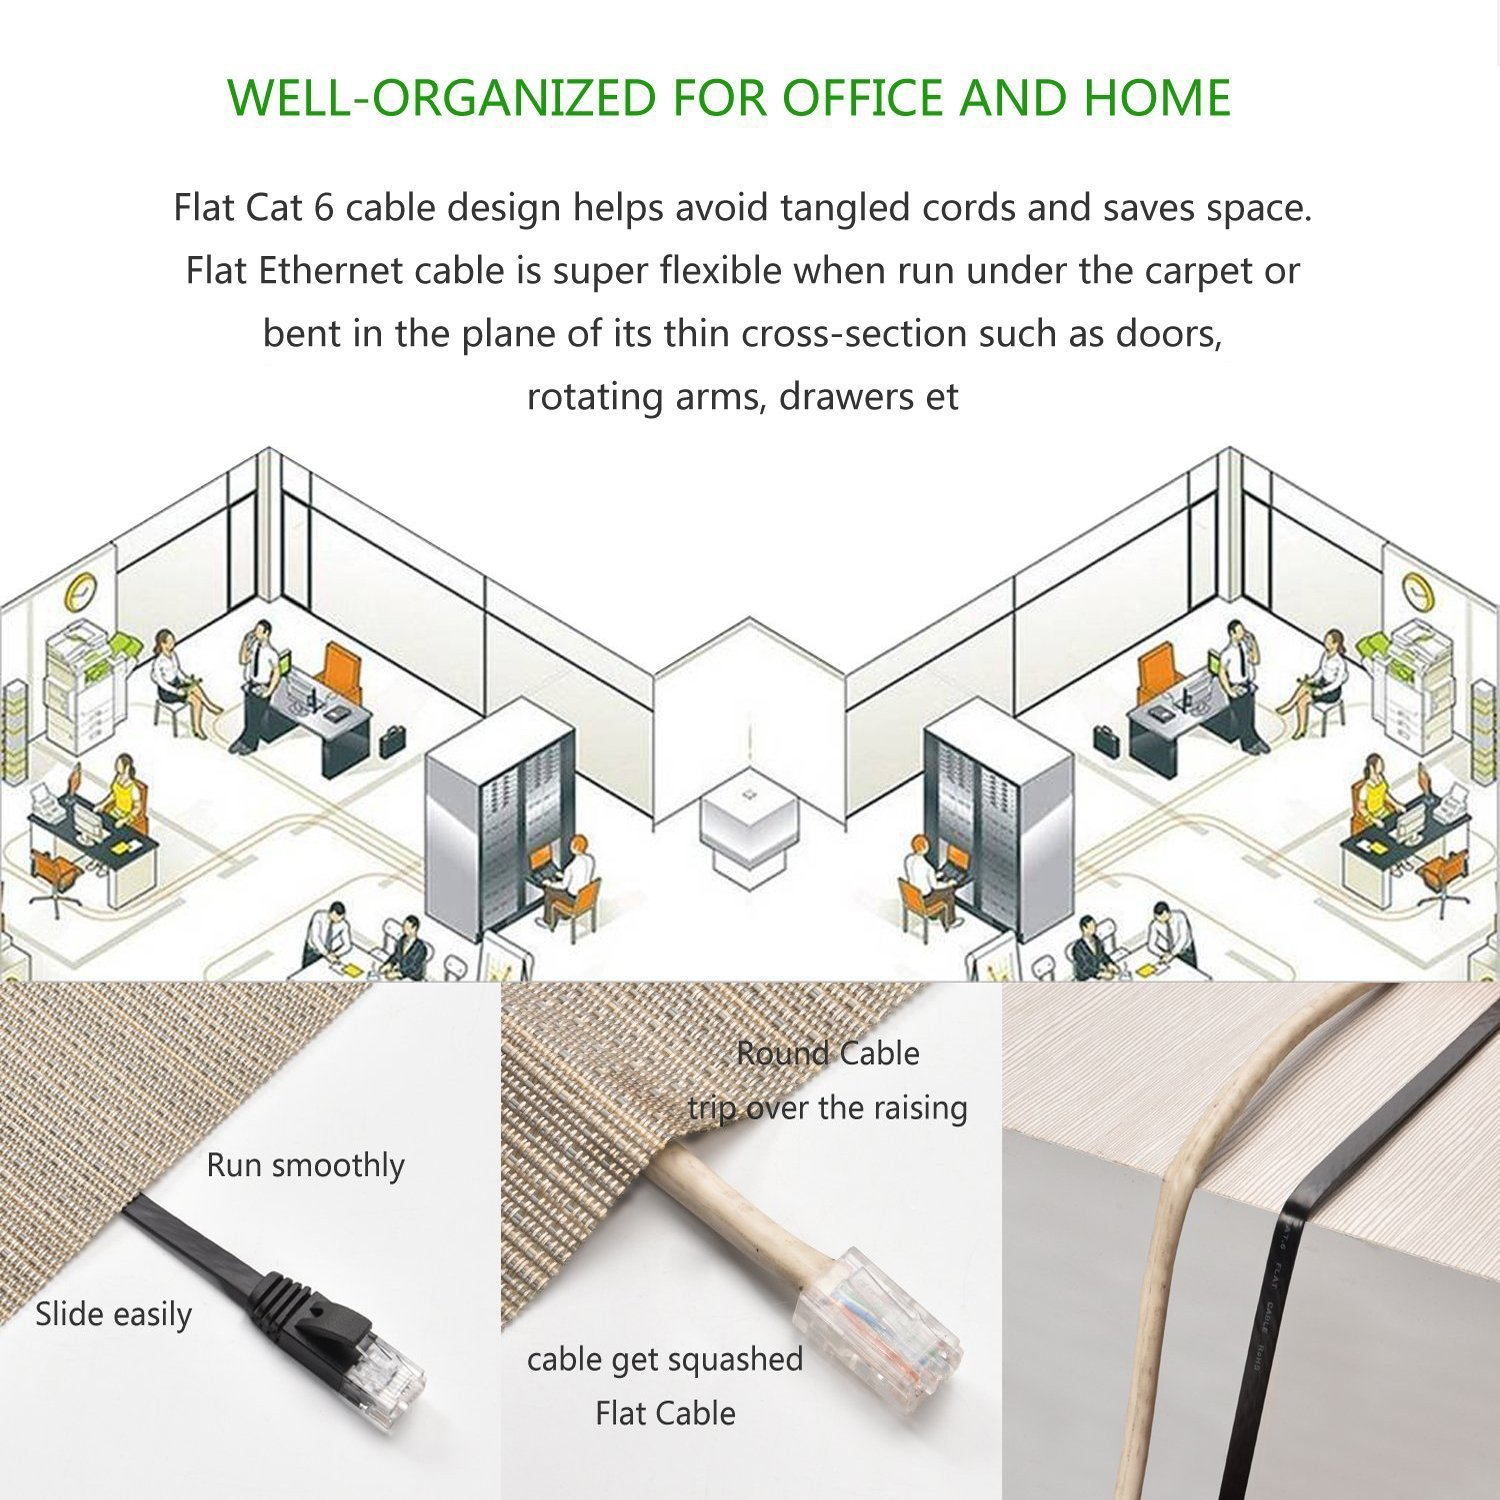 amazon com cat 6 ethernet cable black 150 ft at a cat5e price amazon com cat 6 ethernet cable black 150 ft at a cat5e price but higher bandwidth flat internet network cable cat6 ethernet patch cable short